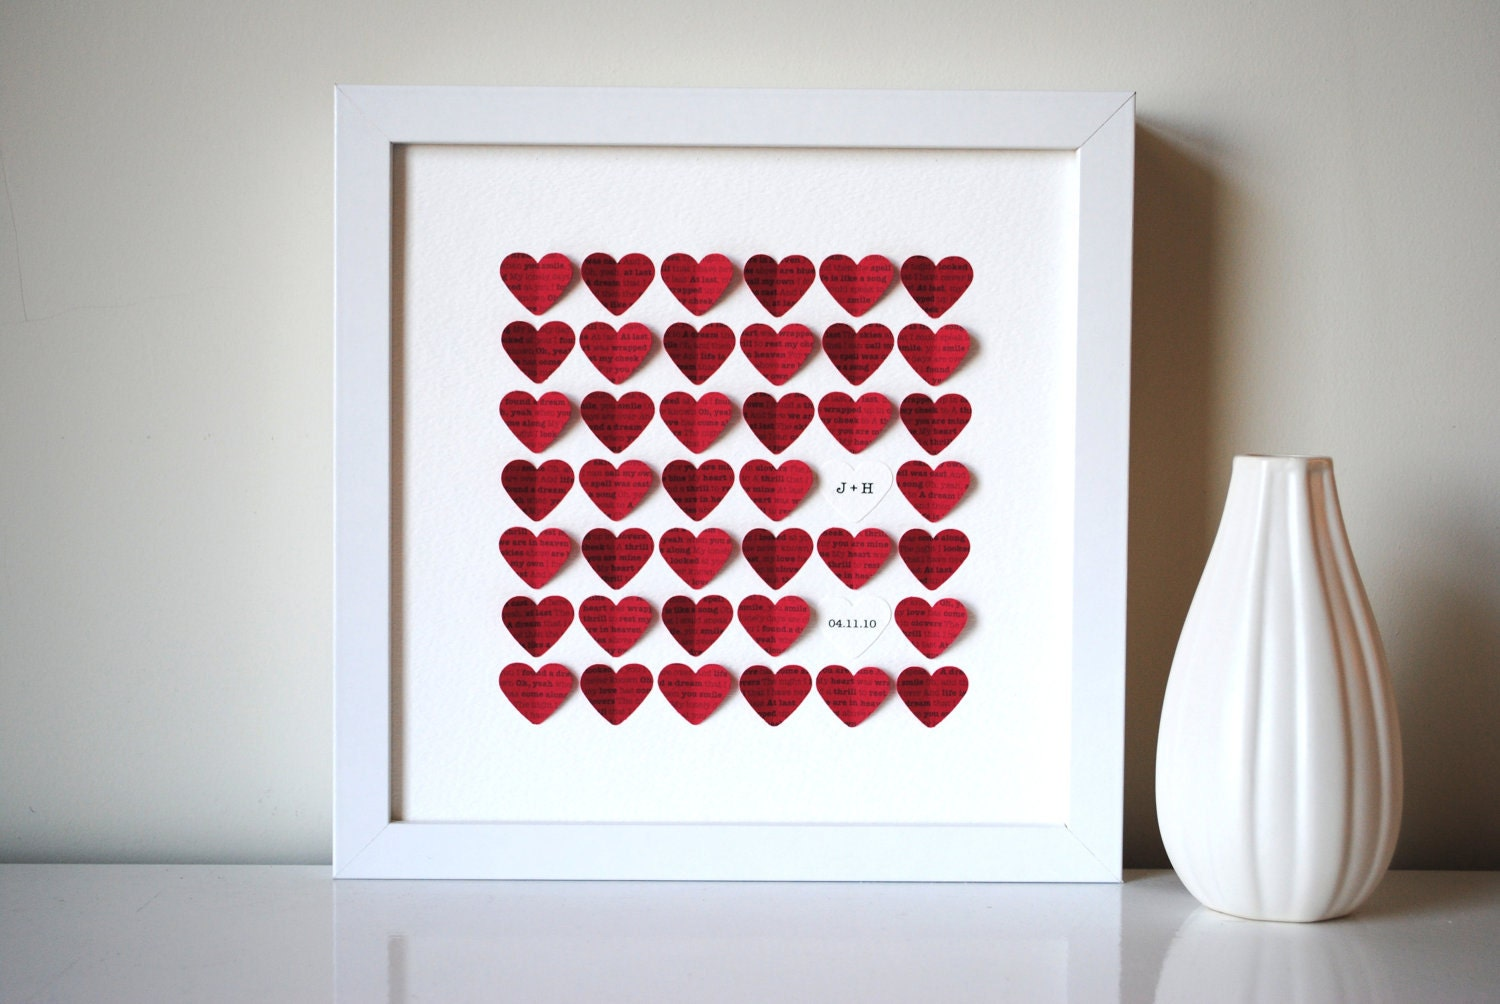 Unique Gifts Wedding: Personalized Wedding Gift 3D Song Hearts Red Made From